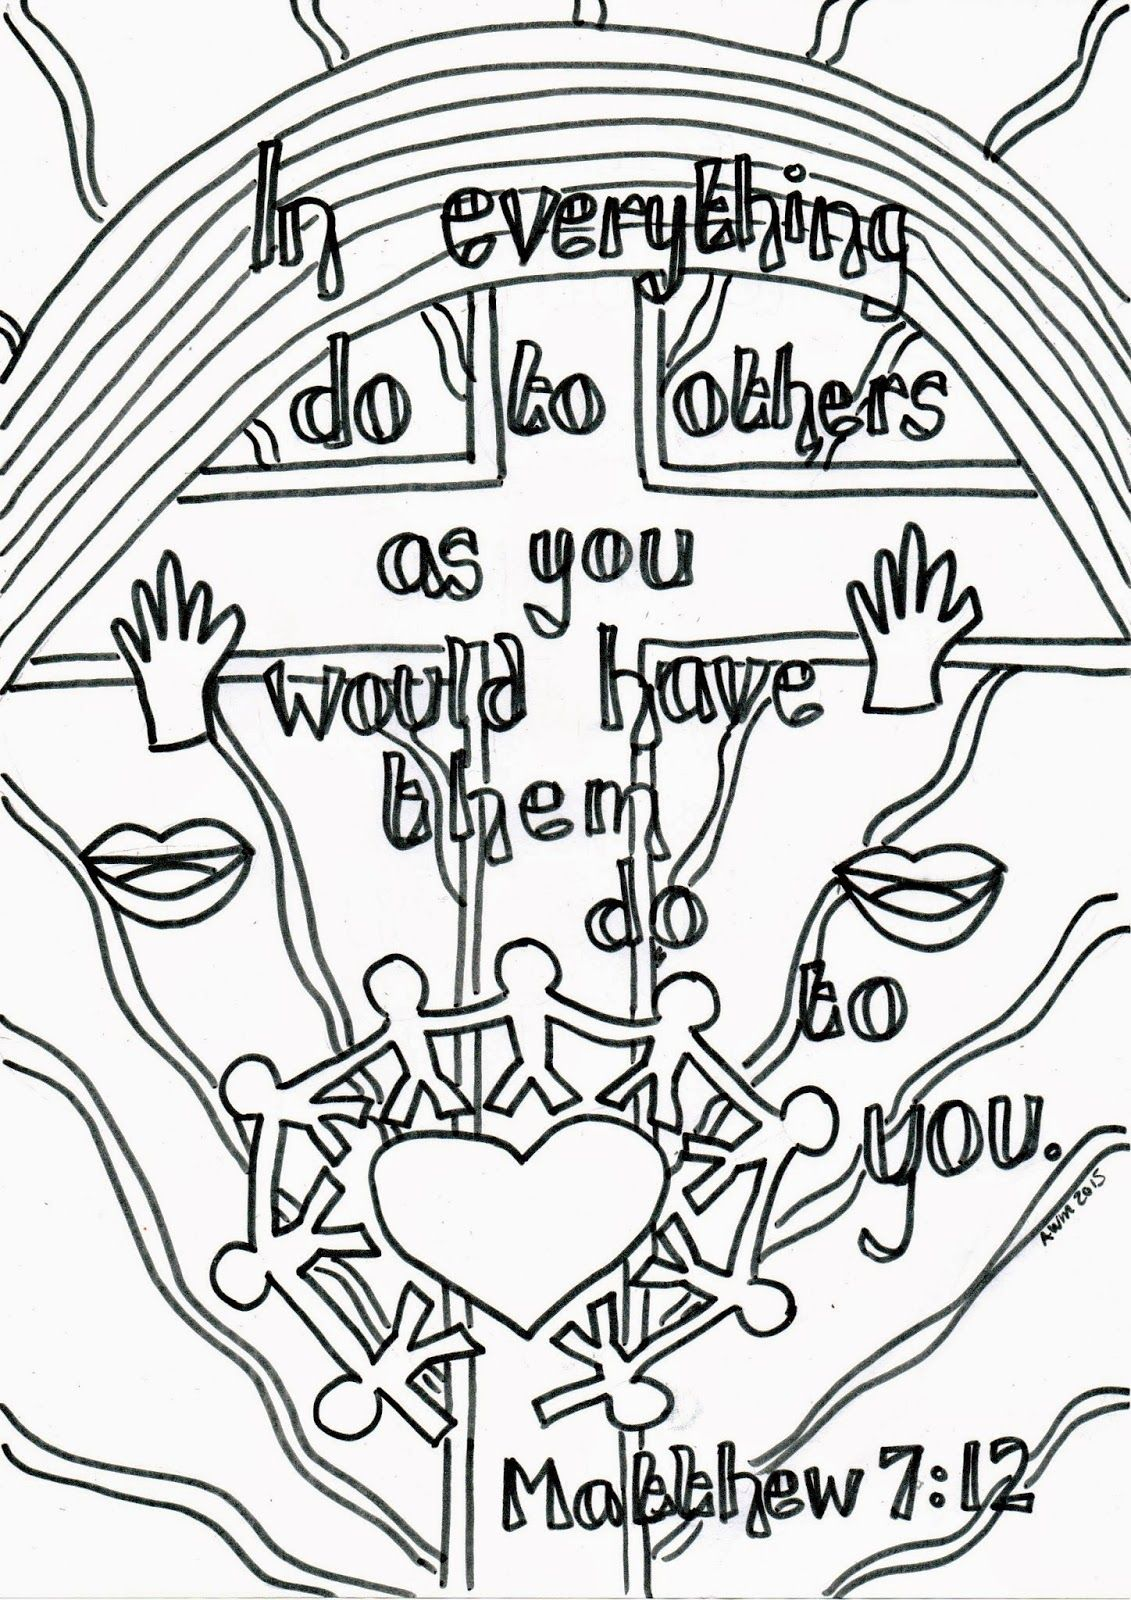 Creative Children S Ministry Colour In Prayers Bible Coloring Pages Bible Verse Coloring Bible Coloring